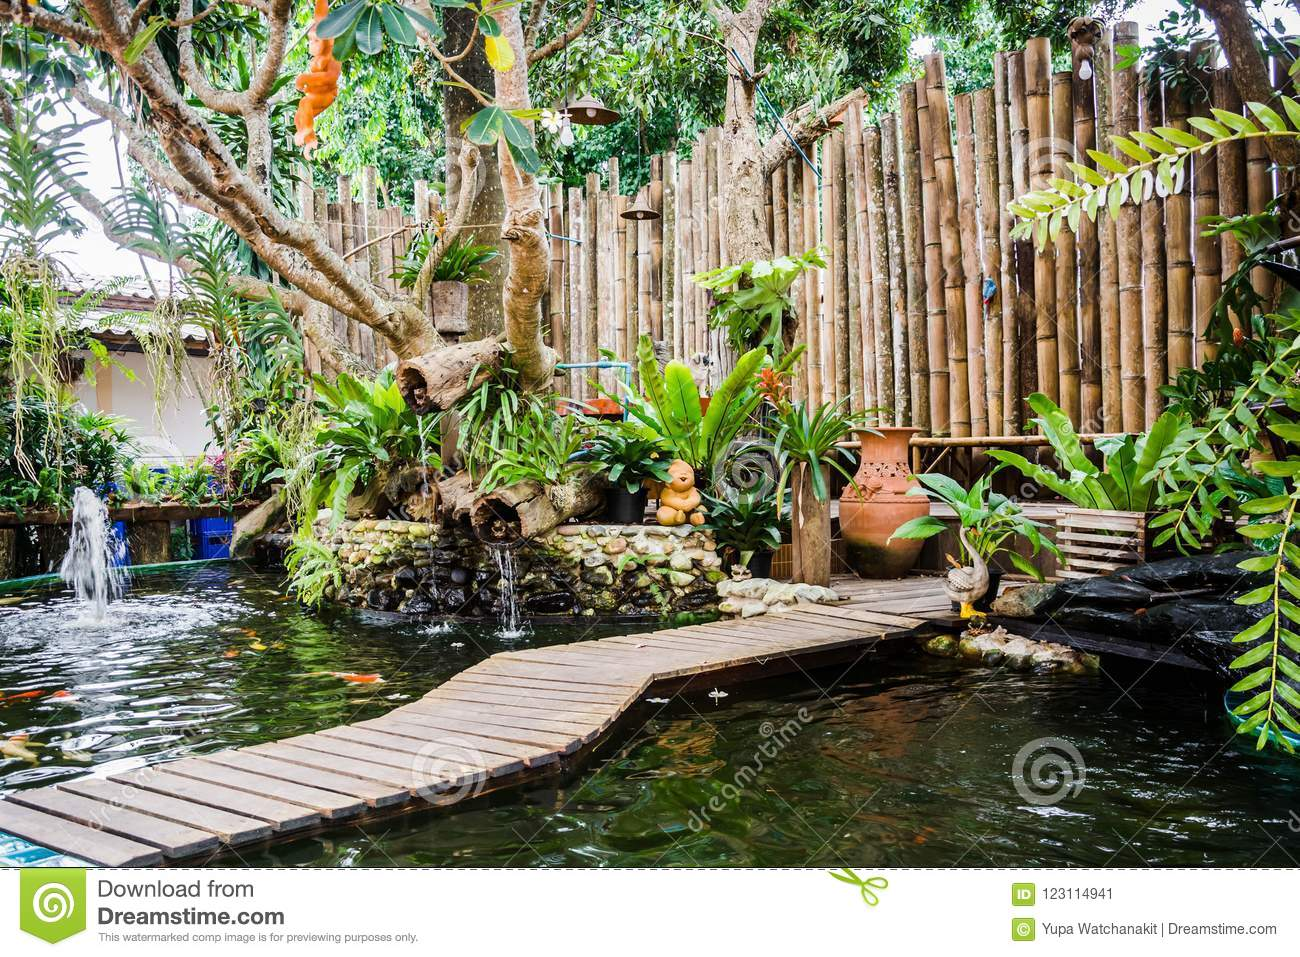 Garden With Pond Of Koi Fish And Decorated Bamboo Wall Stock Image